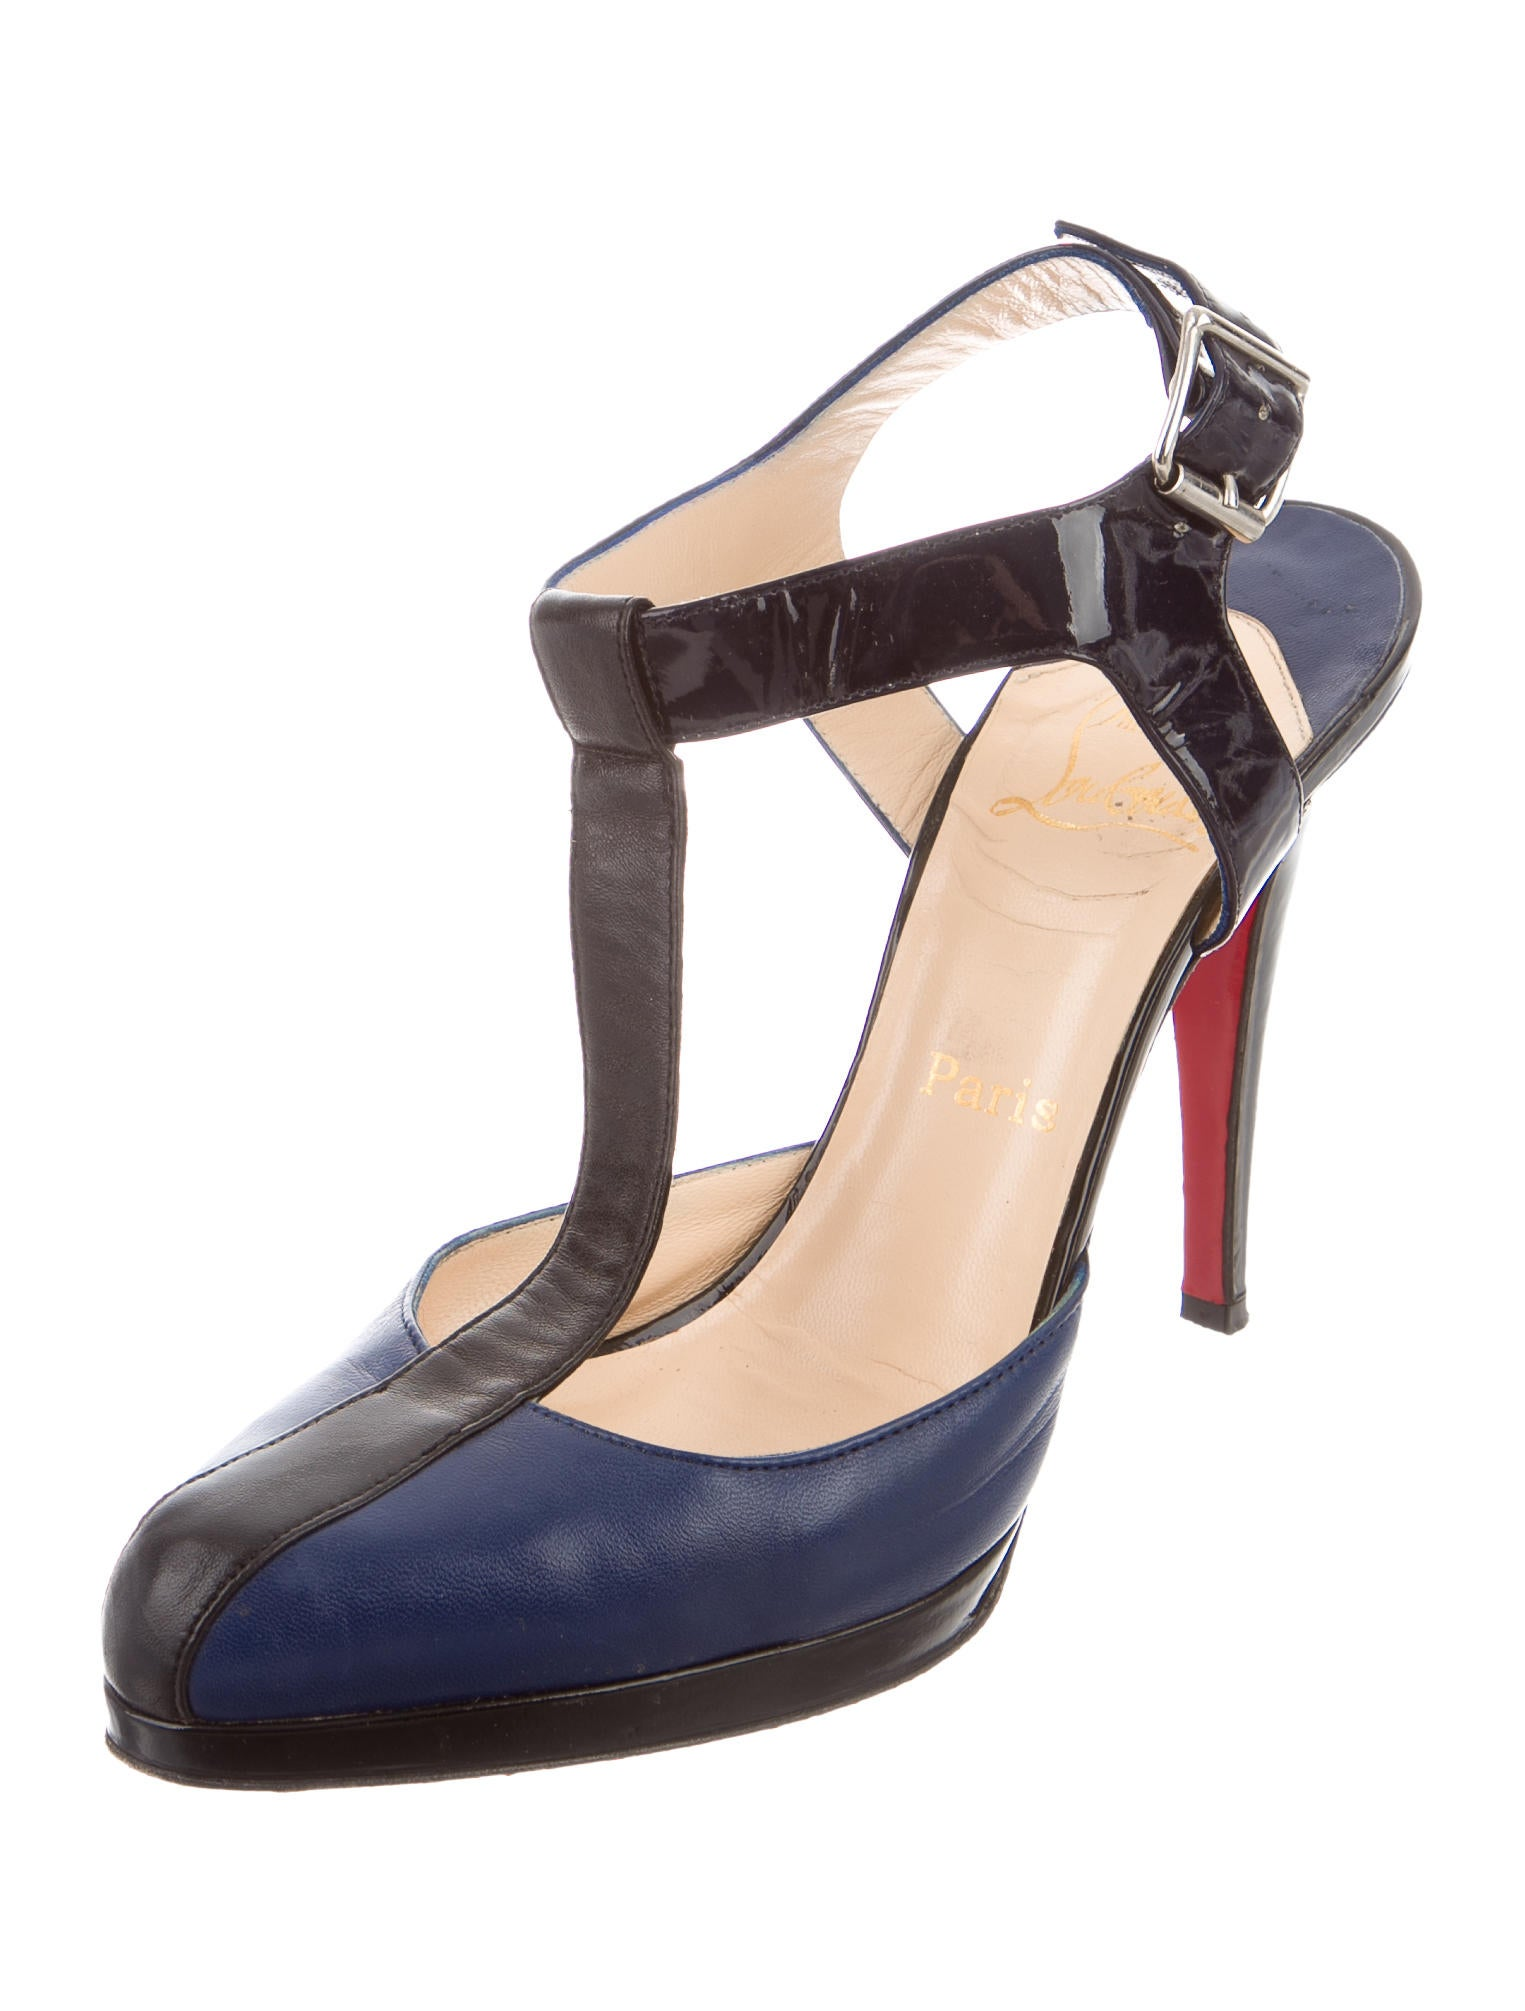 christian louboutin leather t strap pumps shoes cht64289 the realreal. Black Bedroom Furniture Sets. Home Design Ideas